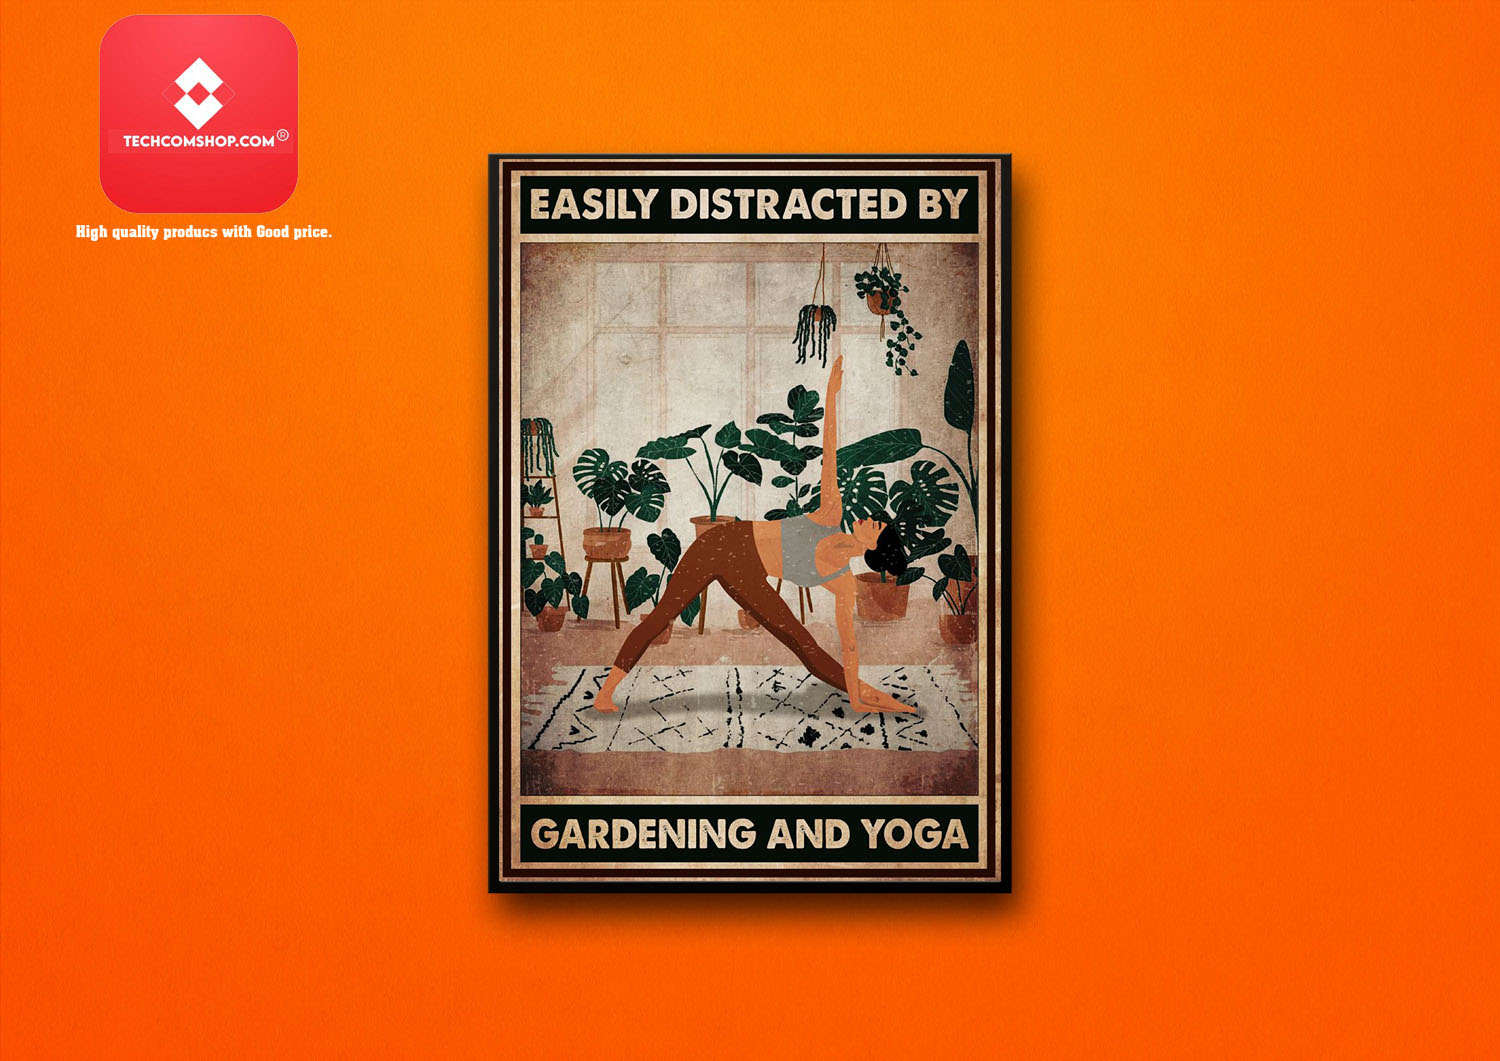 Easily distracted by gardening and yoga poster 8